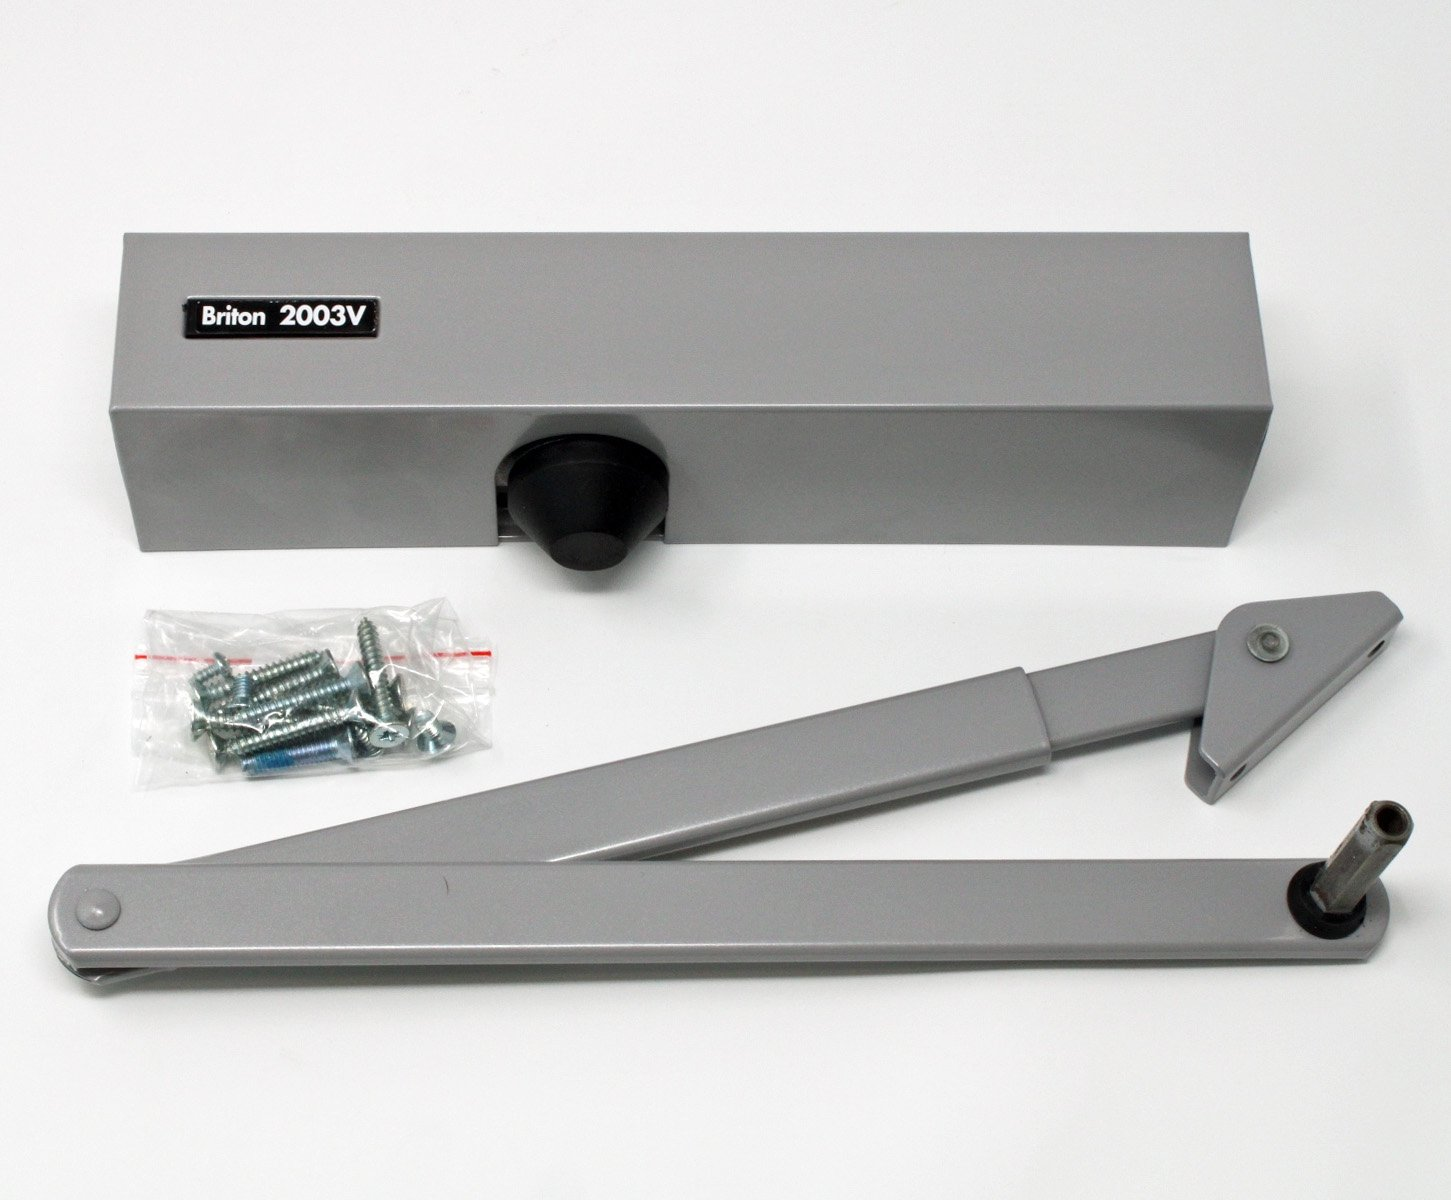 Briton 2003v Overhead Door Closer Silver Overhead Door